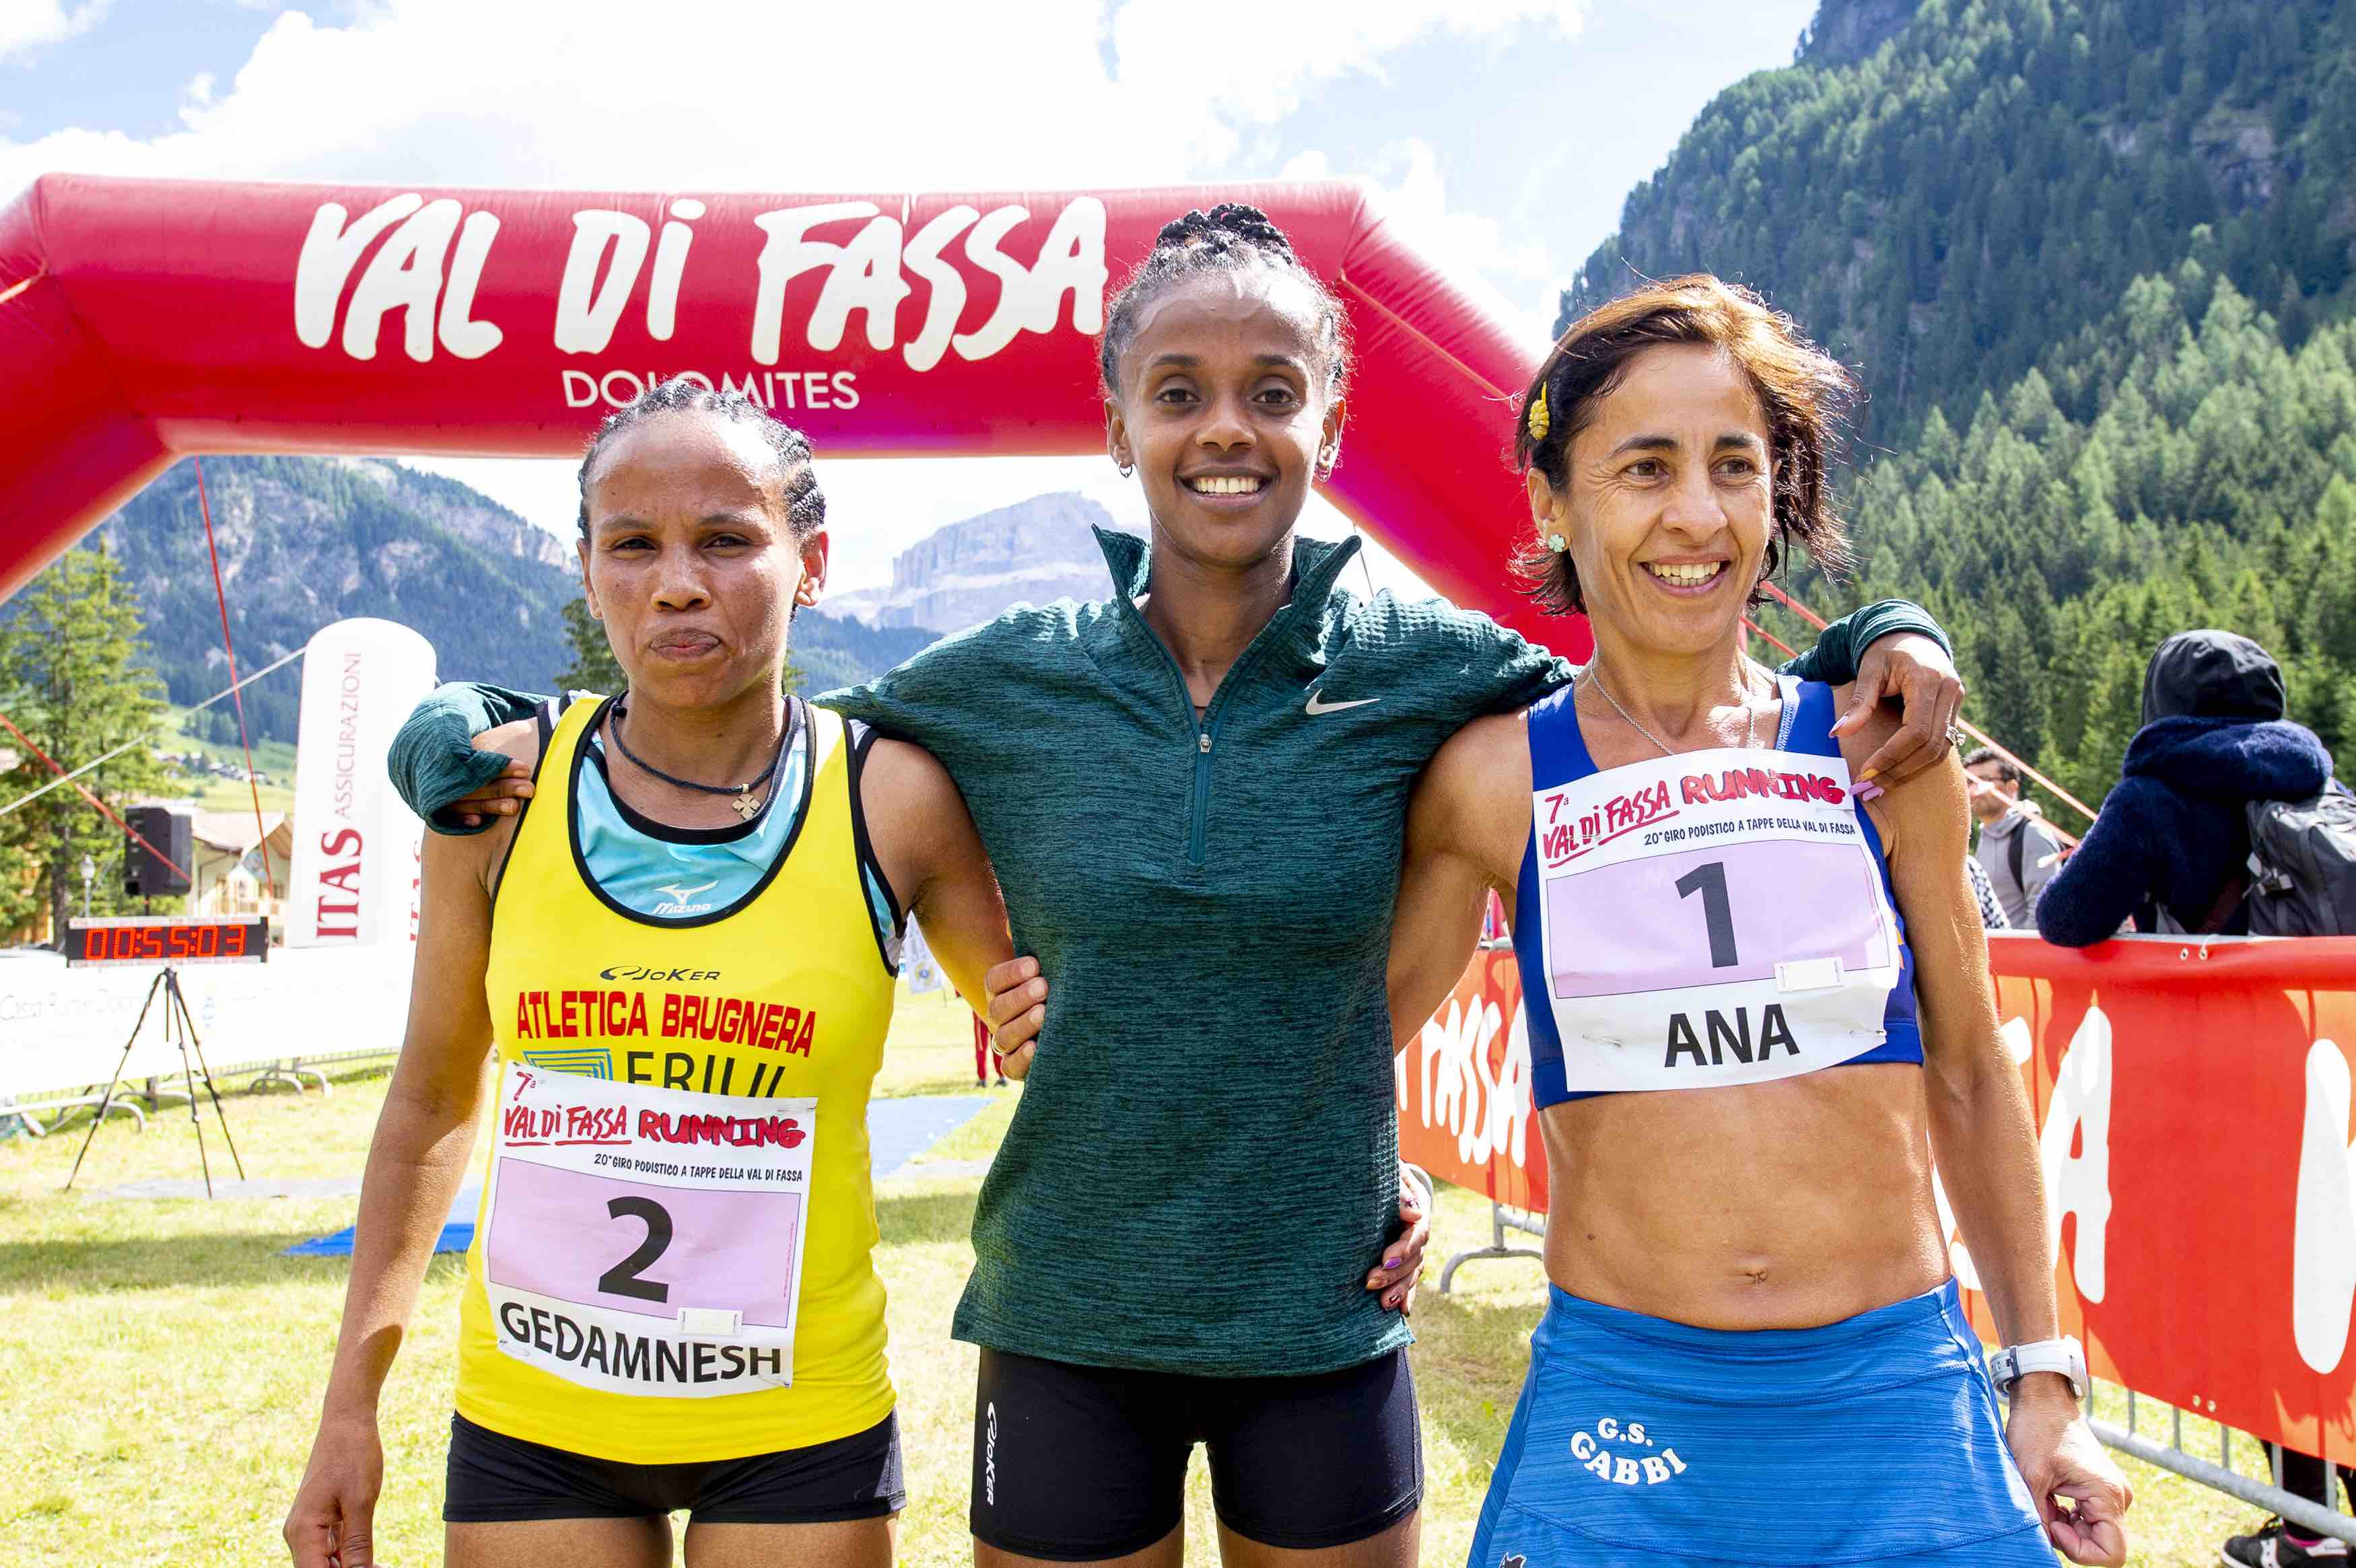 Day 1 - Podio Femminile Val di Fassa Running 2018